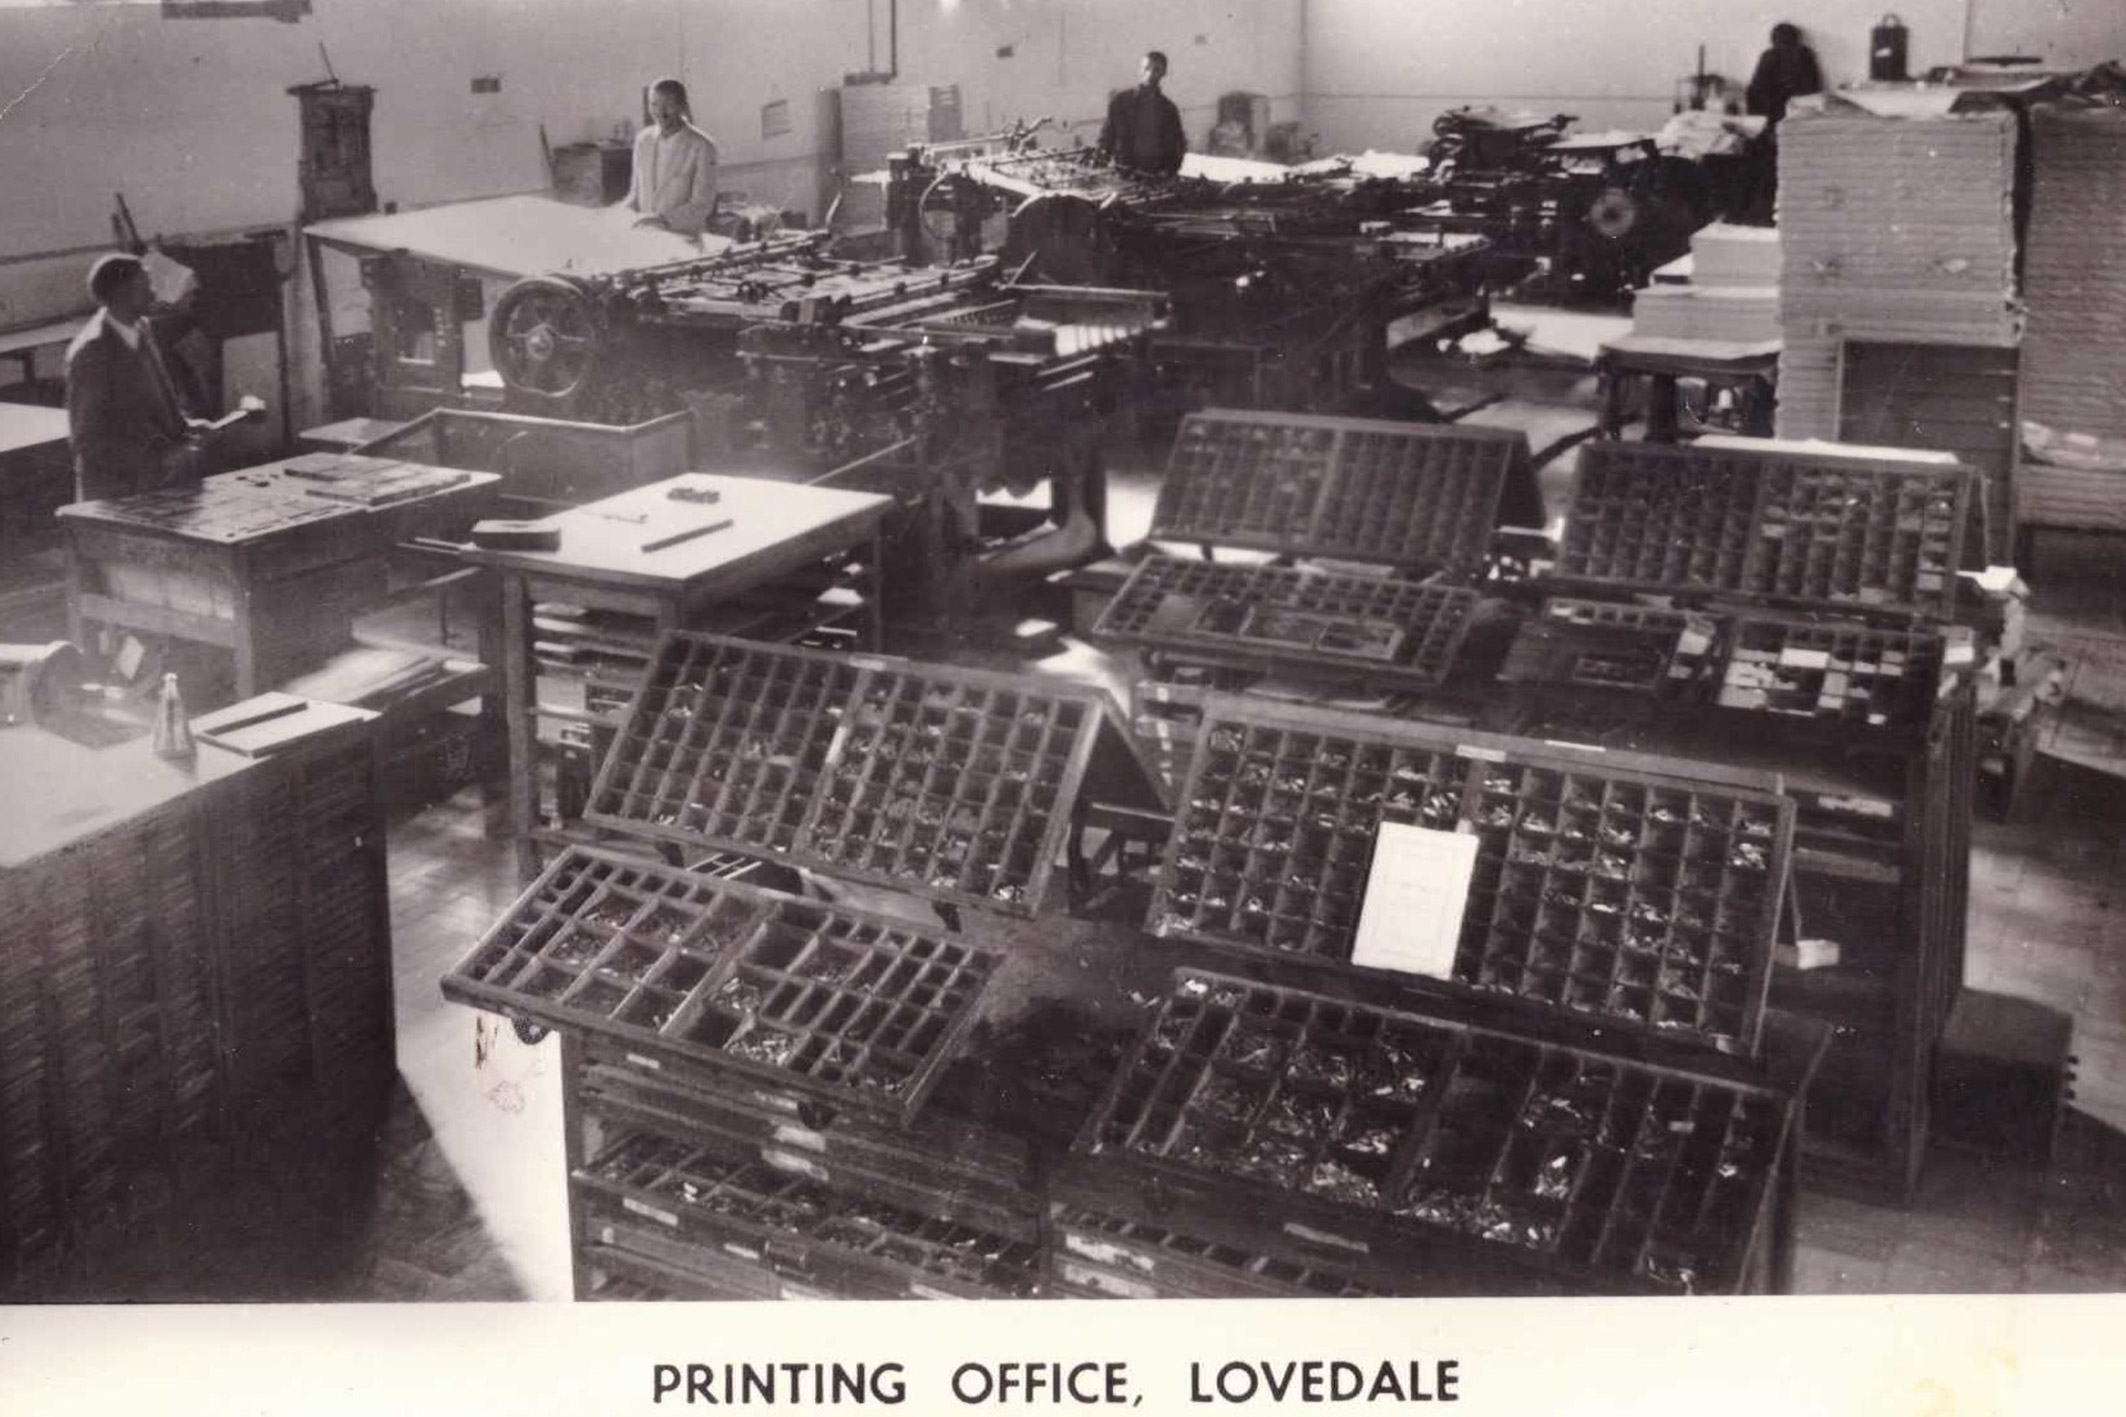 Undated: The printing office at Lovedale Press, which publishes literature, journals, newspapers and school textbooks. (Image courtesy of Amathole Museum, King William's Town)